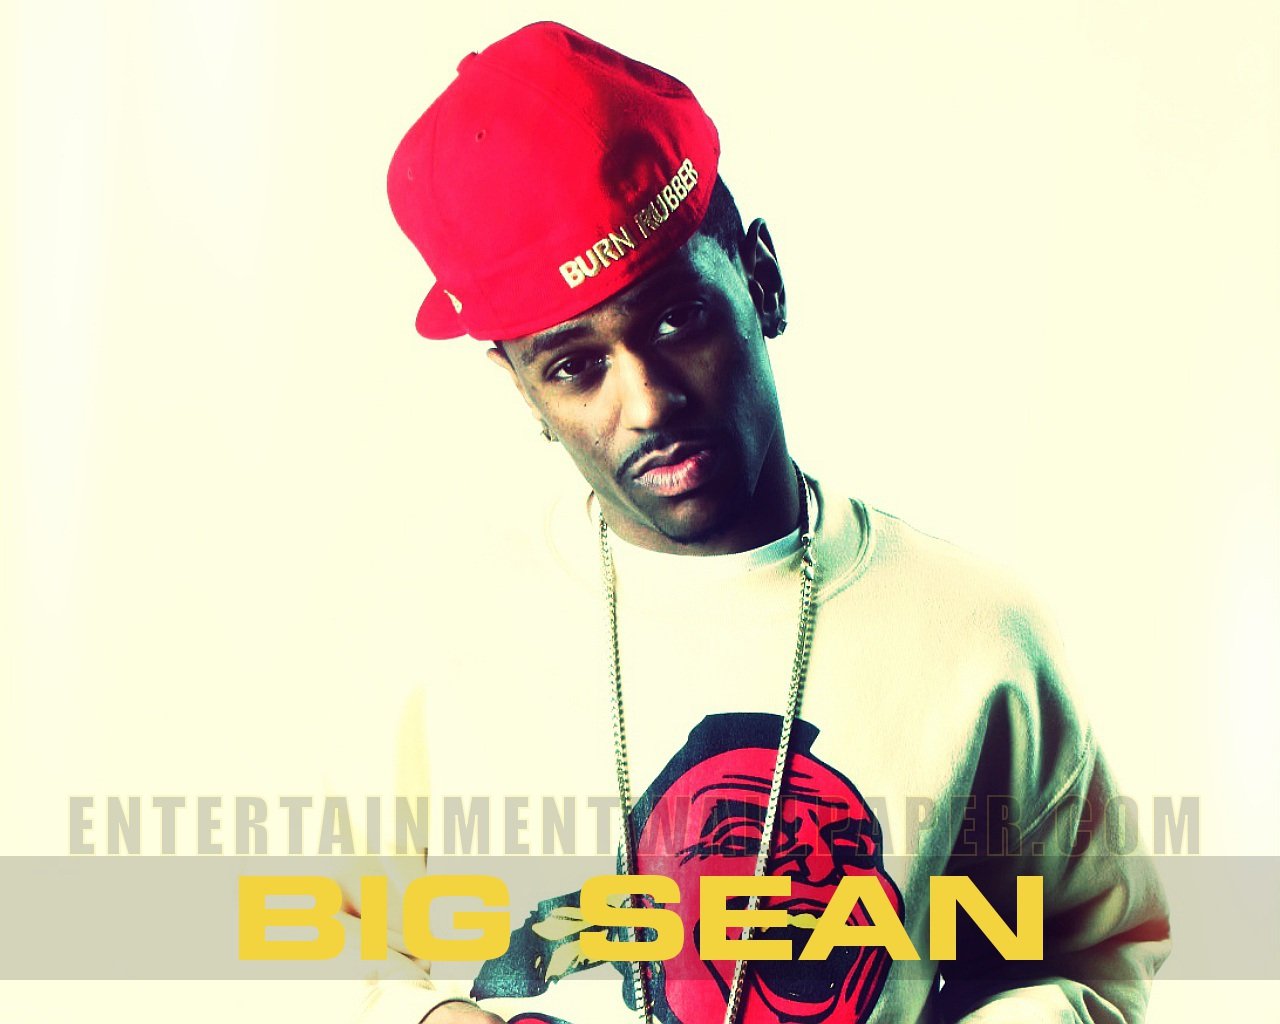 Big Sean Wallpaper - Original size, download now.